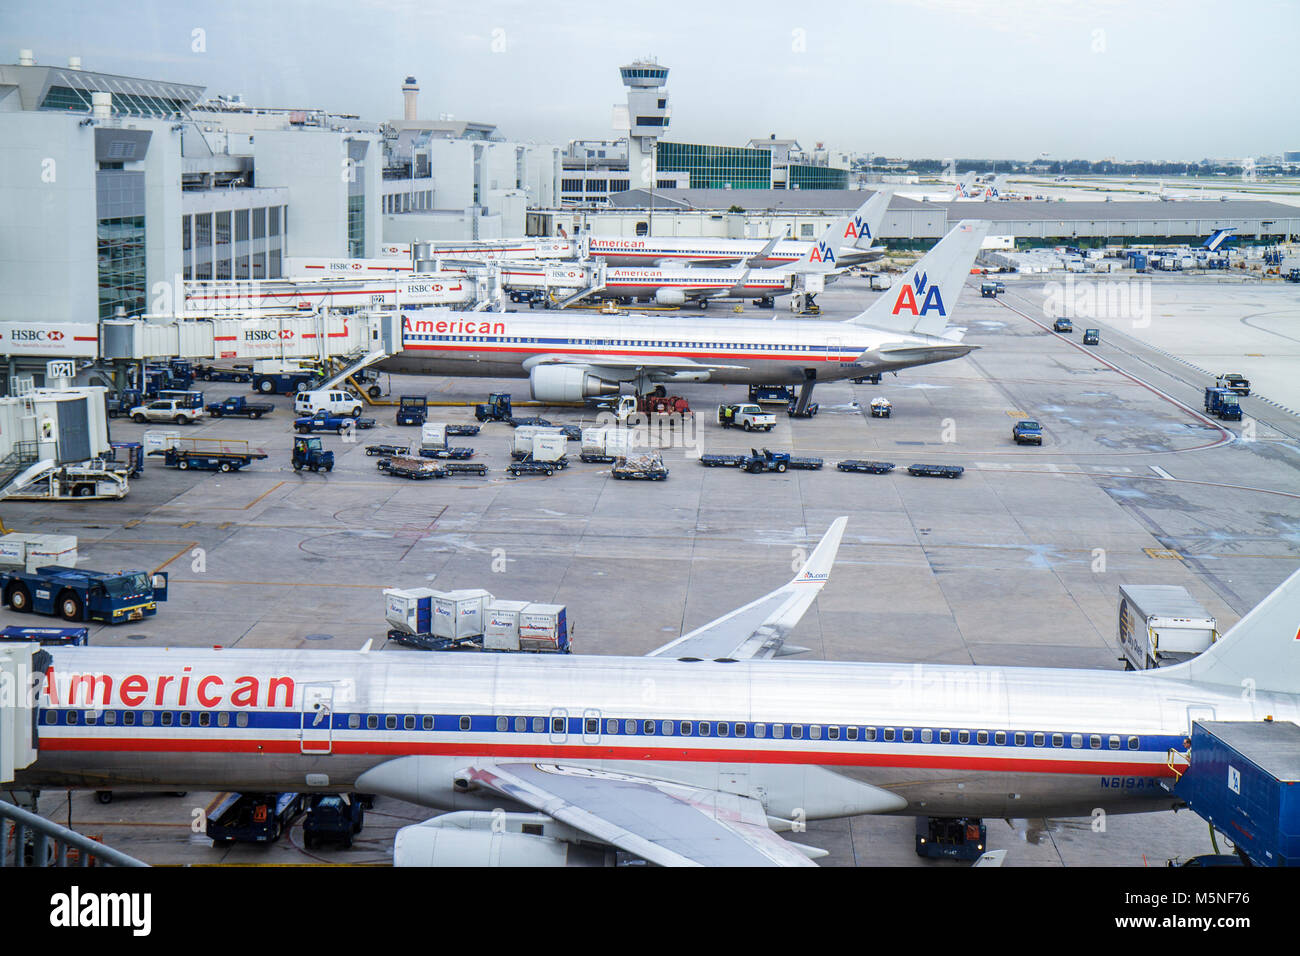 MiamiMiami Florida International Airport MIA gate area tarmac American Airlines commercial airliner - Stock Image